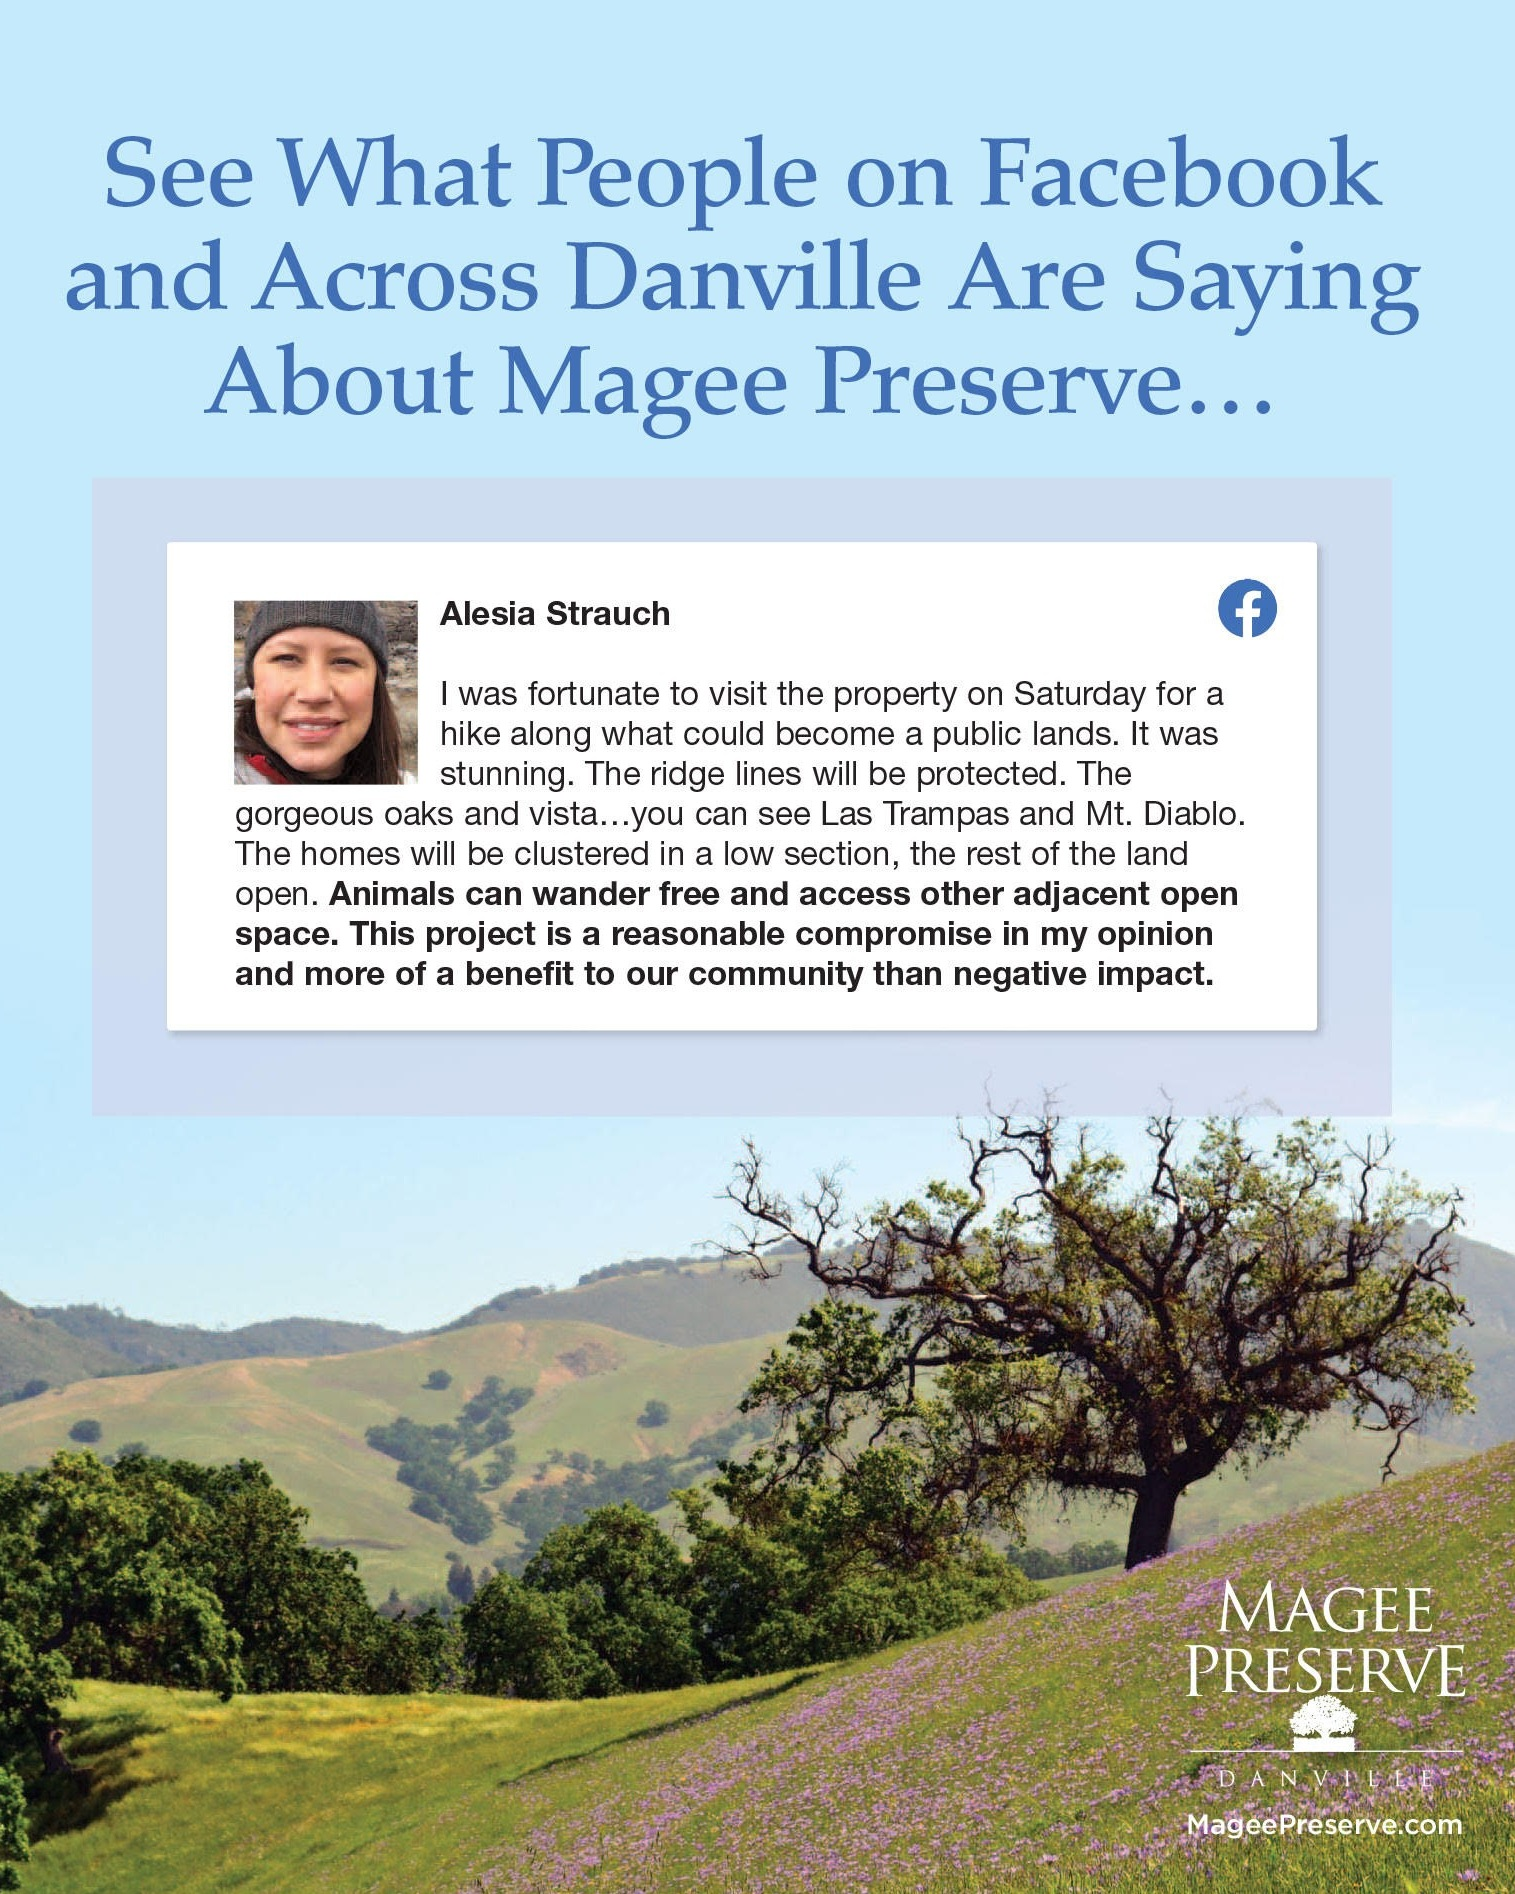 See what people on Facebook and Across Danville are saying about Magee Preserve's open space and miles of new public trails. -